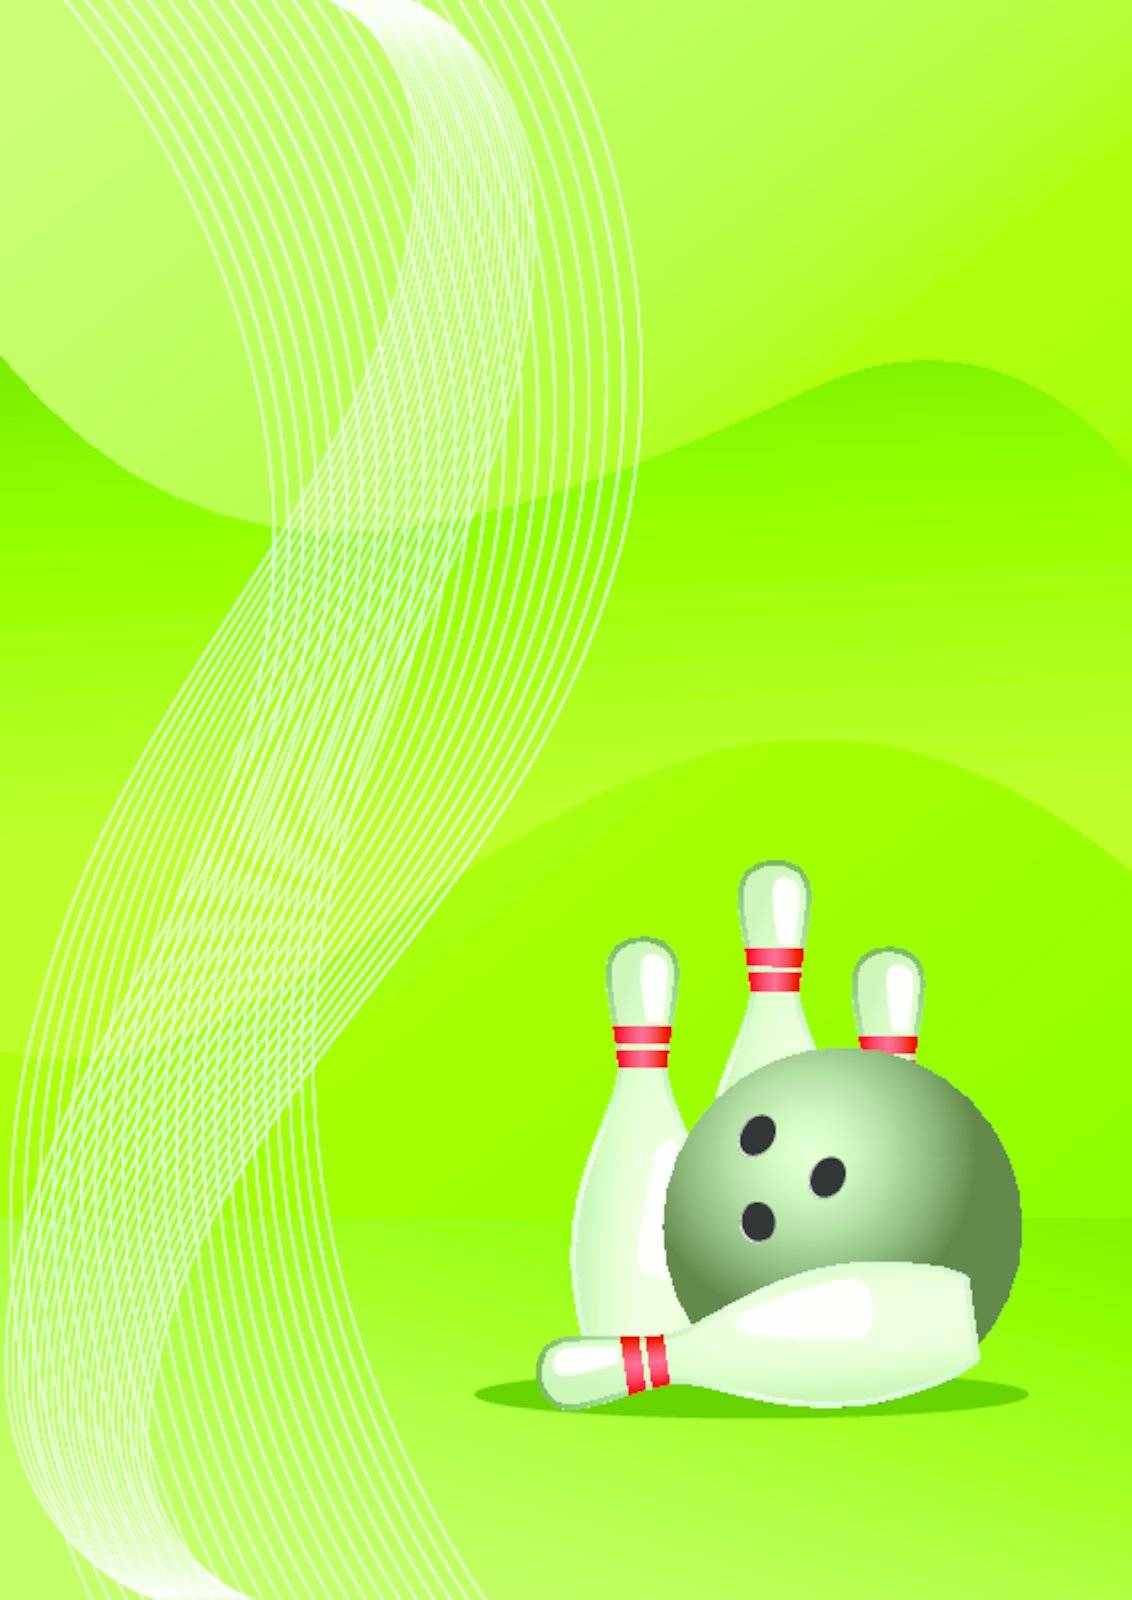 Vector illustration of bowling vector, abstract sport background